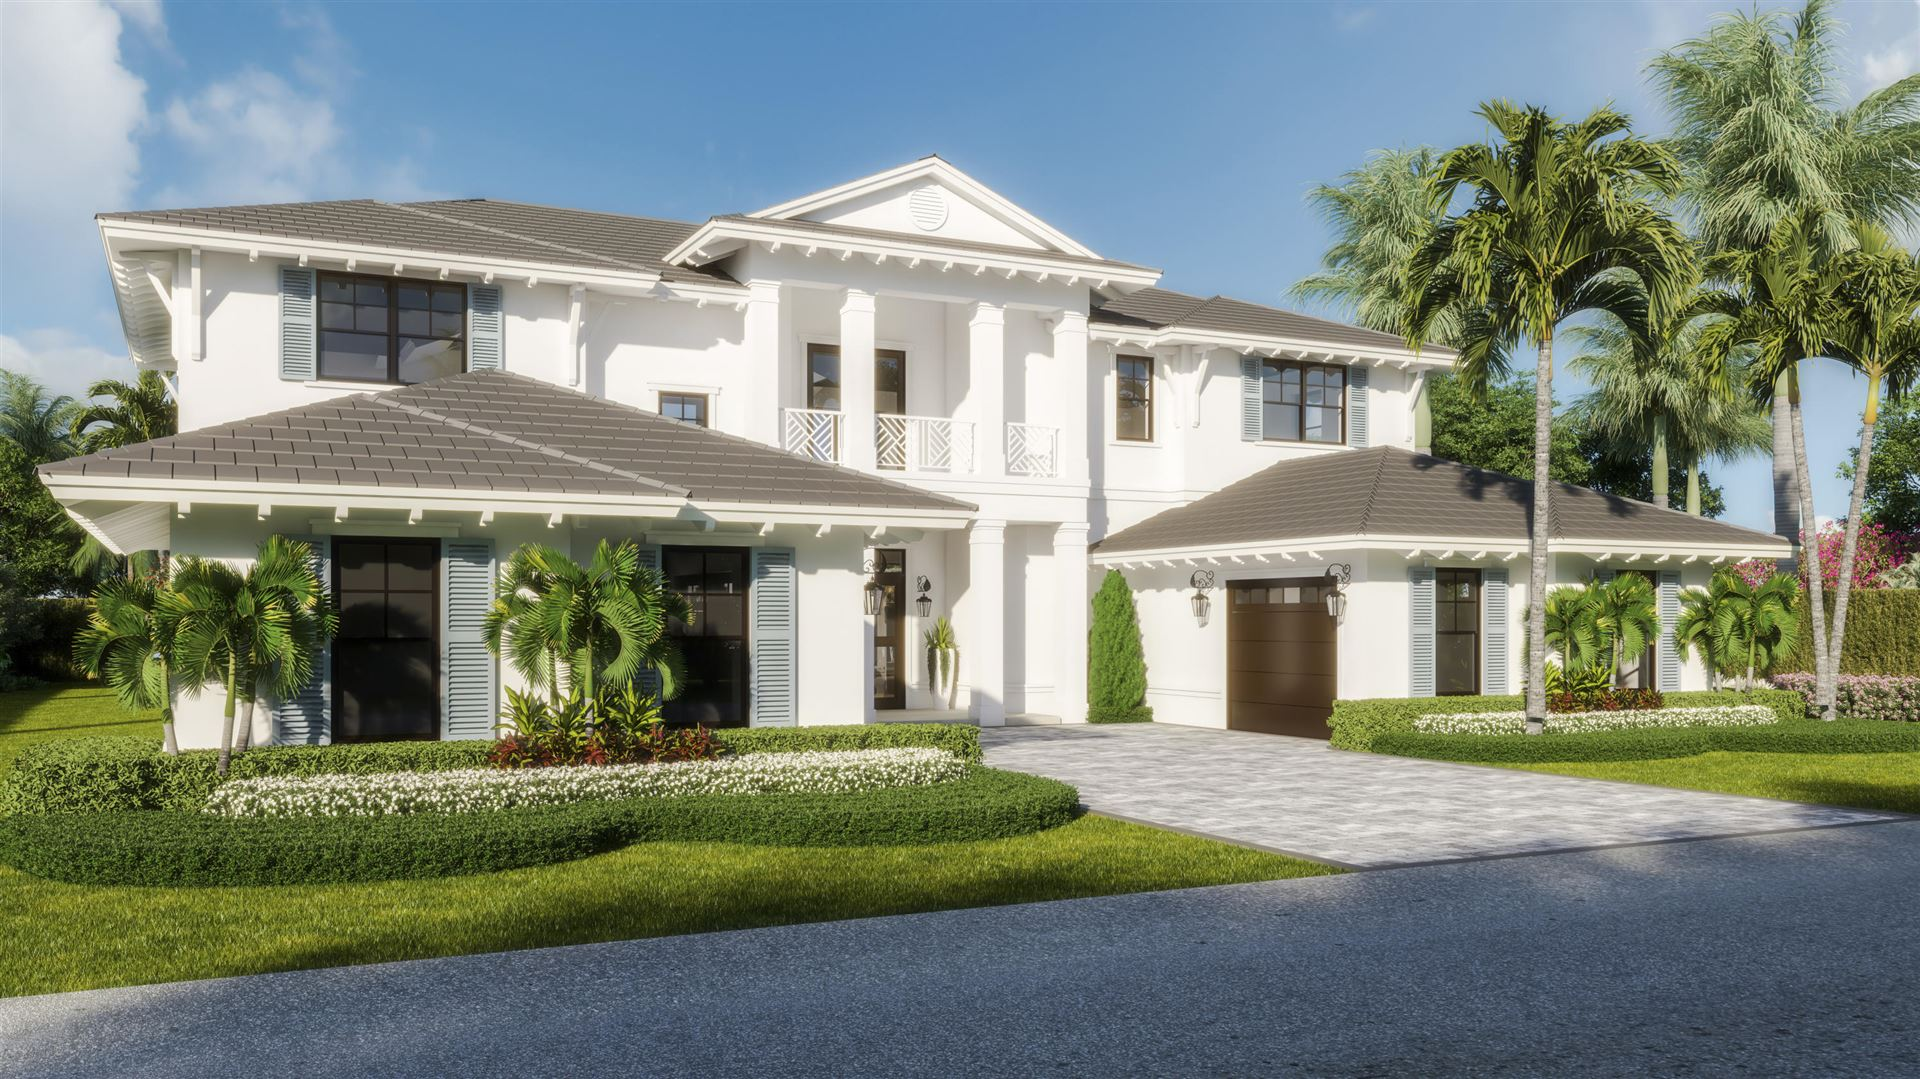 Photo of 1090 Coral Way, Singer Island, FL 33404 (MLS # RX-10692442)